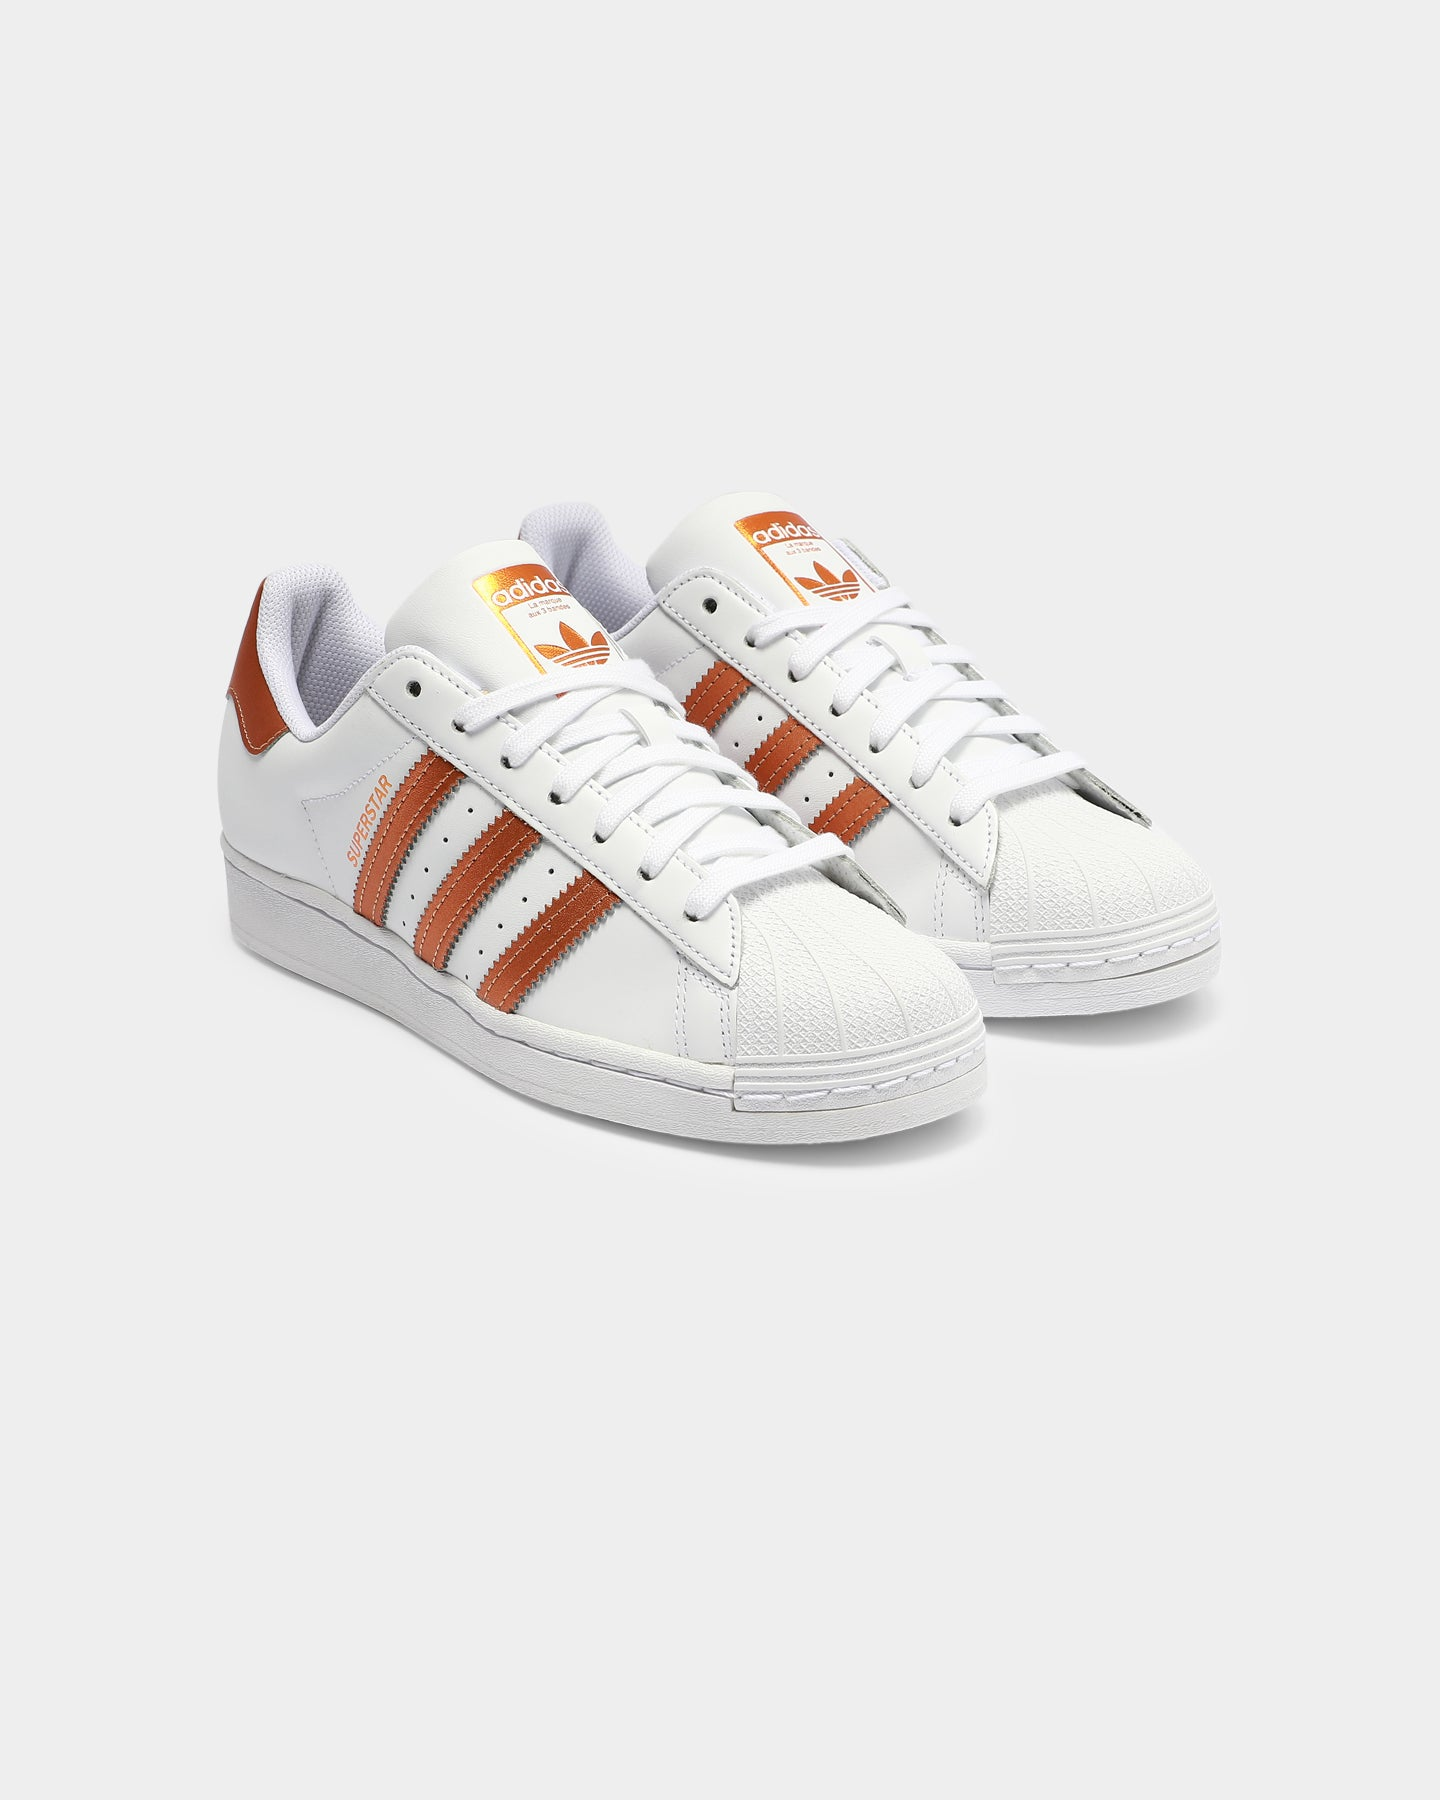 Adidas Superstar White Copper Top Sellers, UP TO 67% OFF